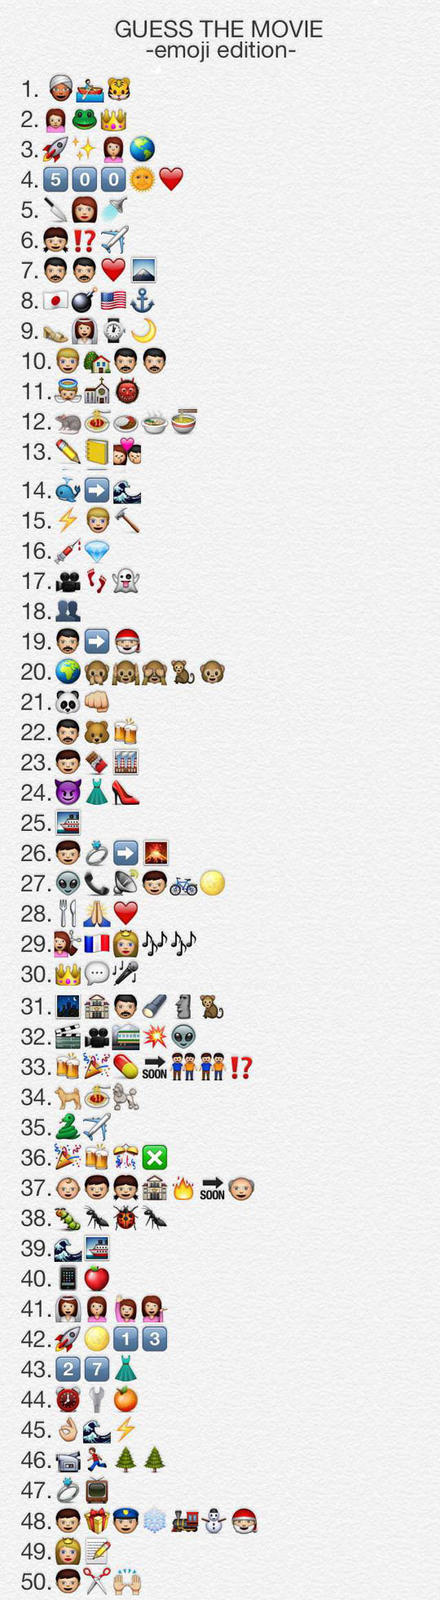 Guess The Movie Emoticon Edition